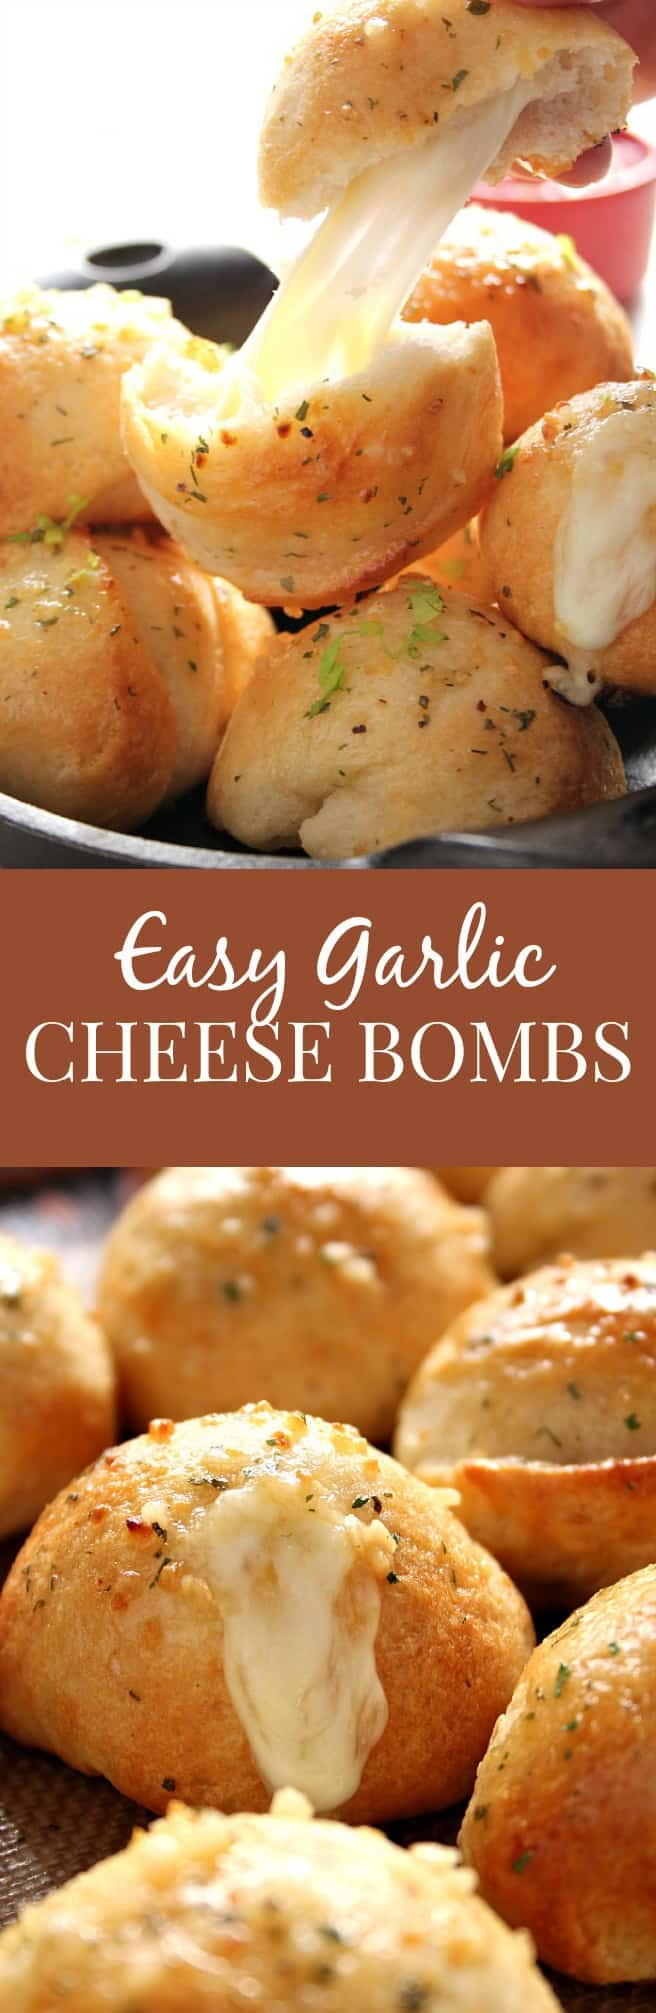 cheese bombs long Easy Garlic Cheese Bombs Recipe